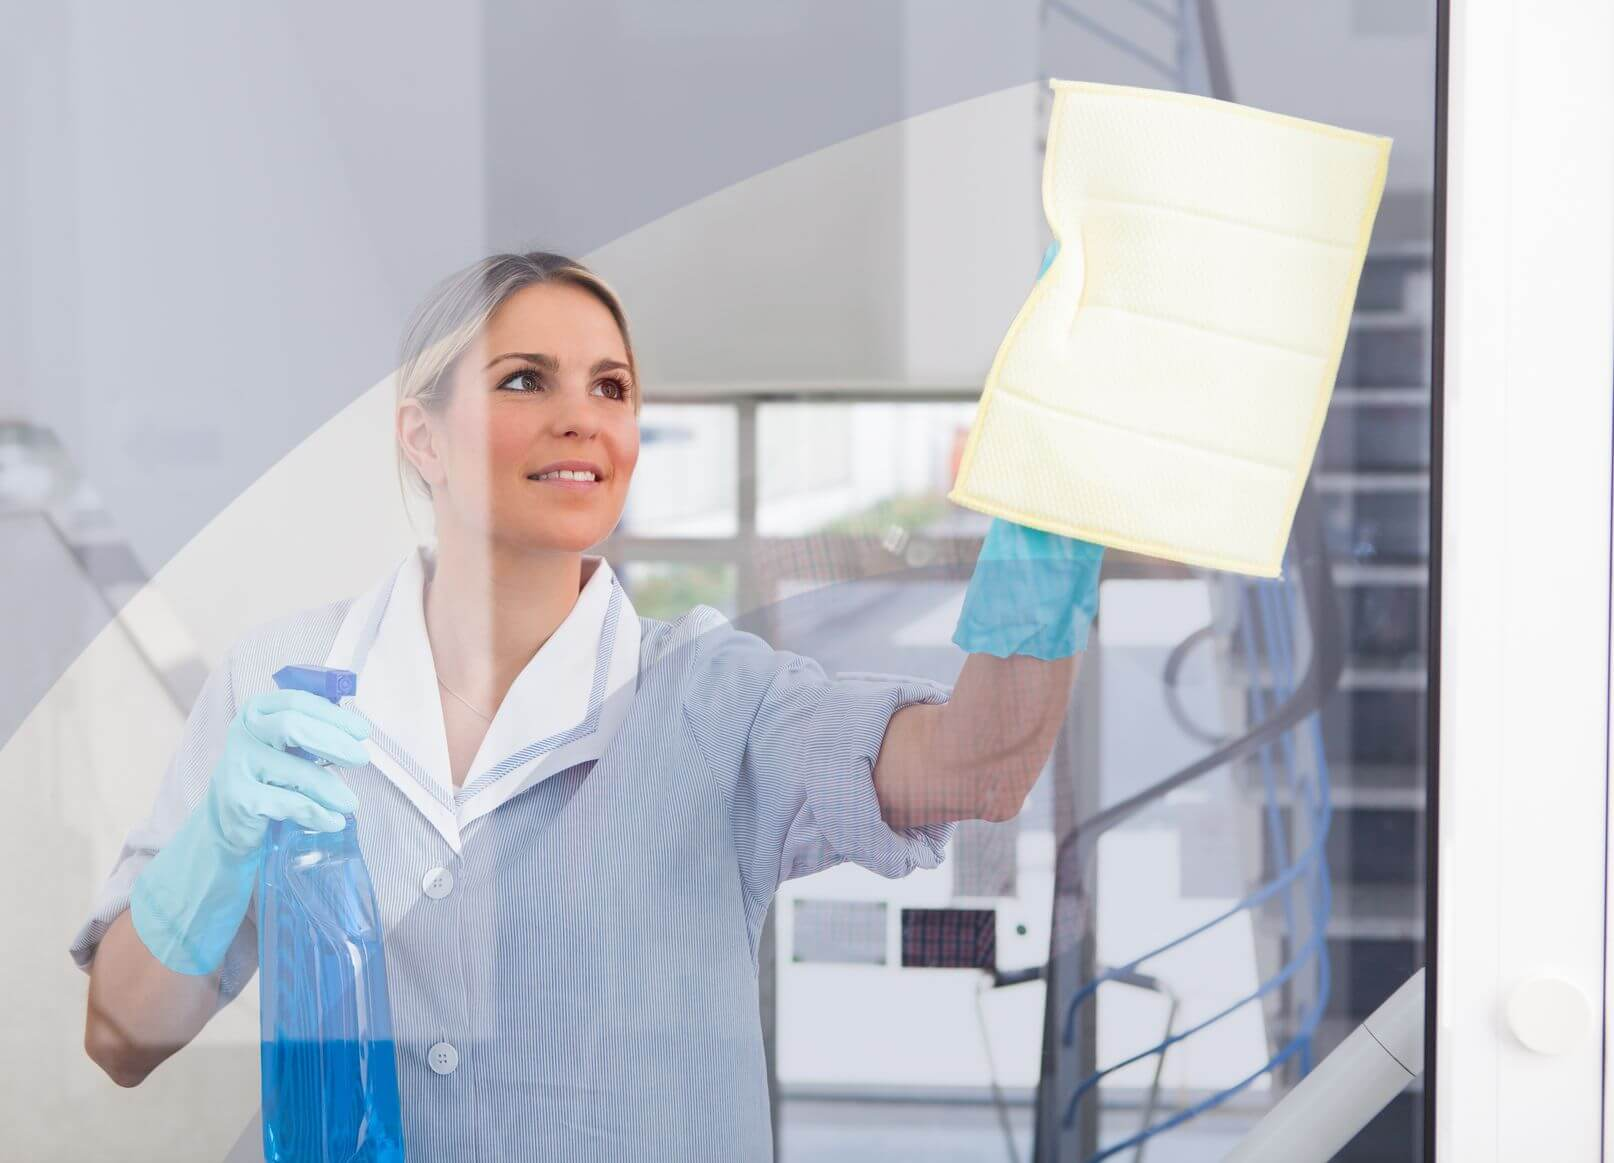 cleaning-service-prices-for-your-office.jpg